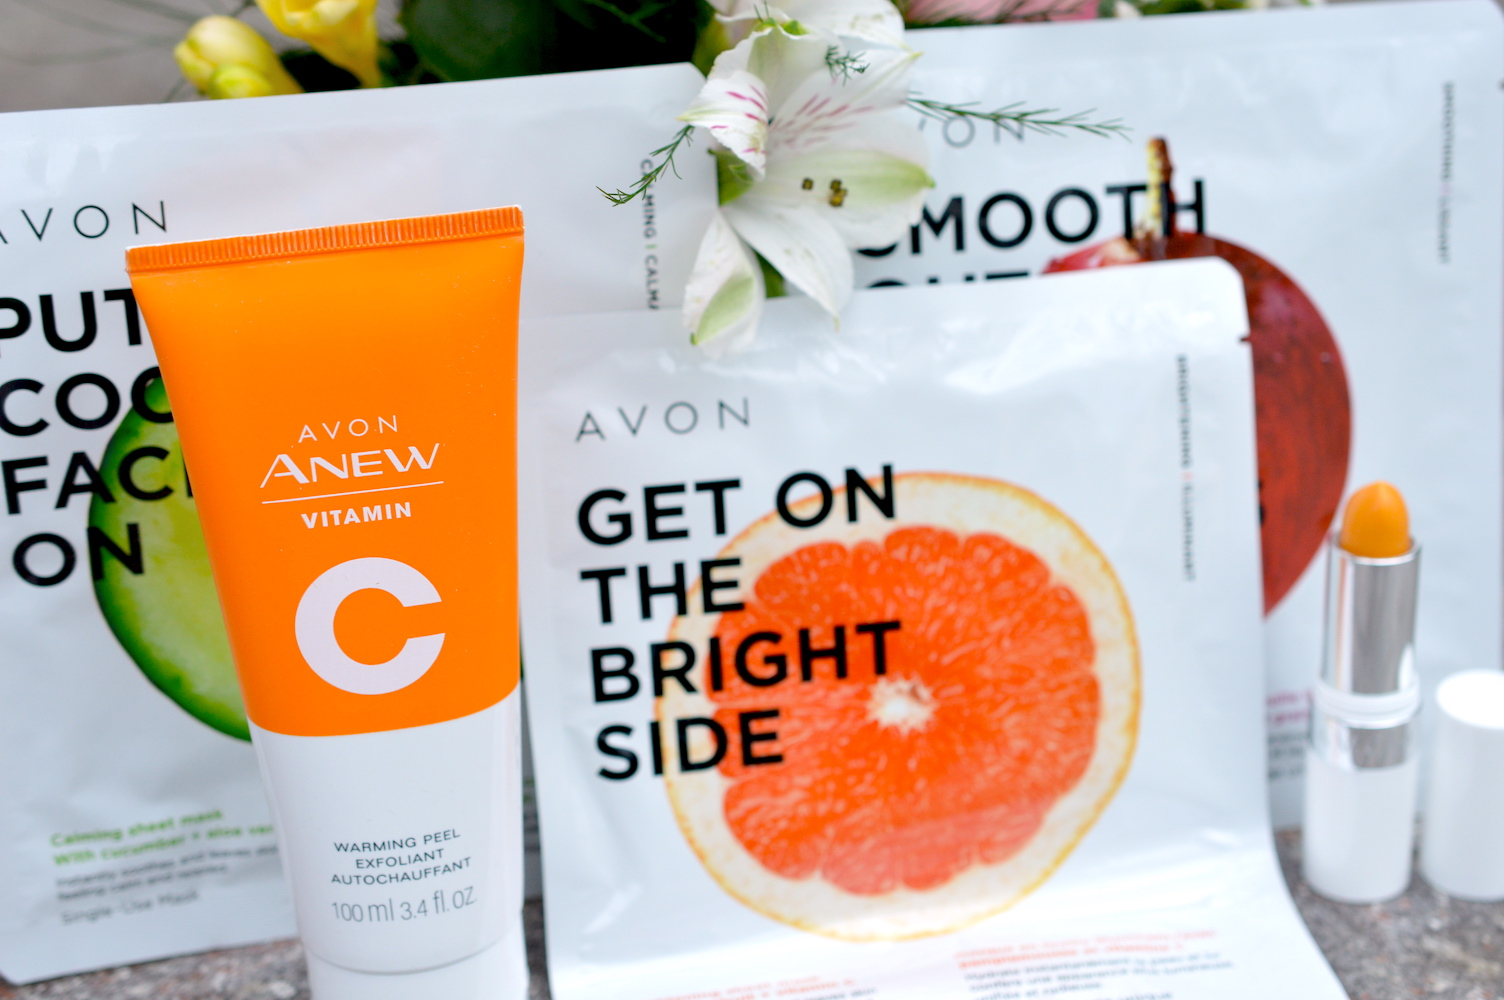 AVON Anew Vitamin C Collection